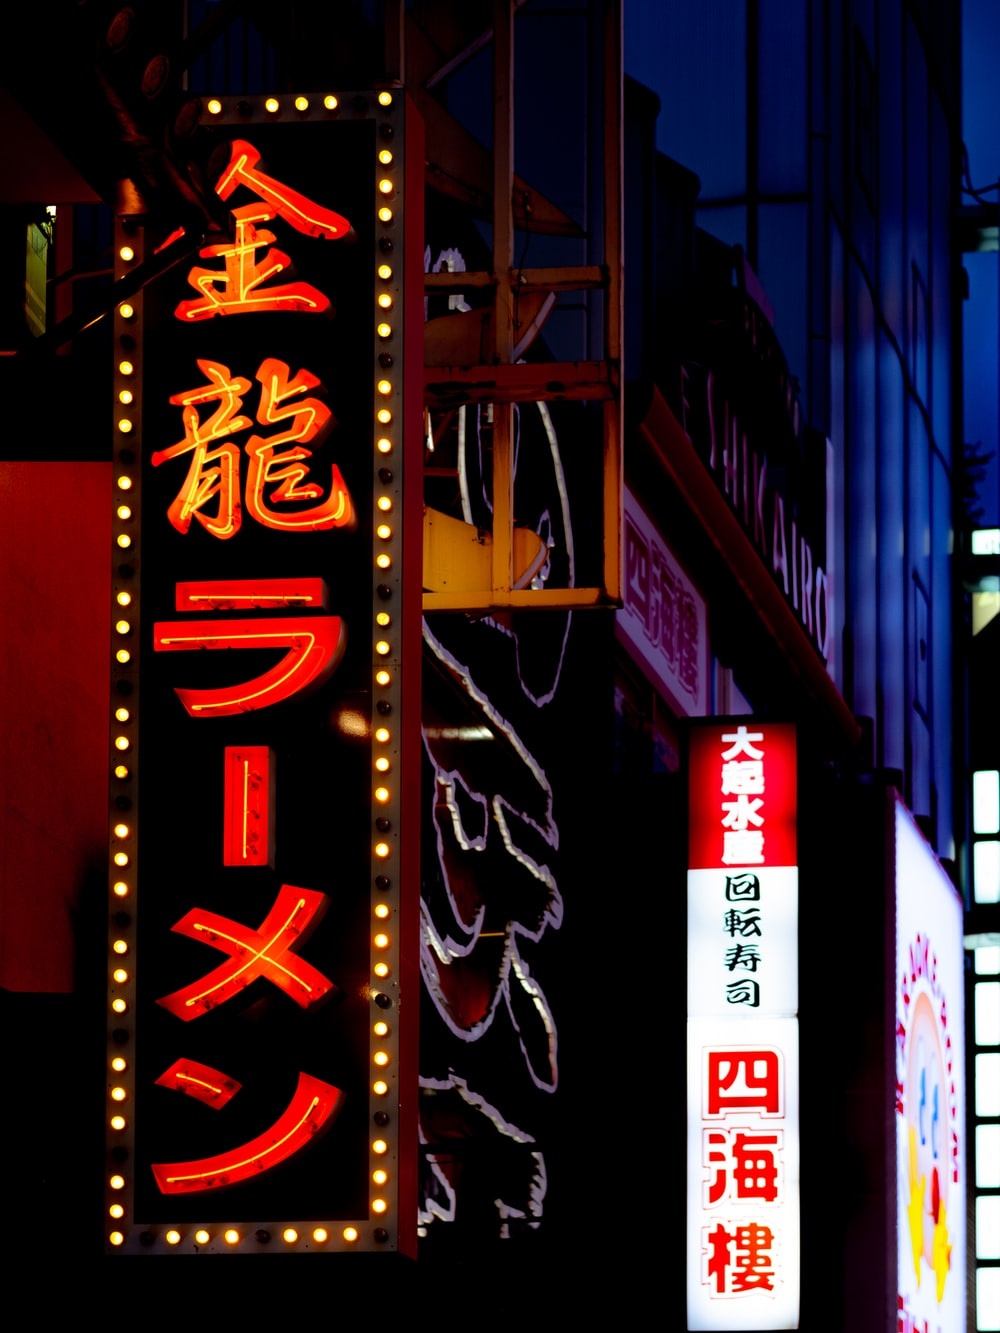 red and black kanji text neon light signage